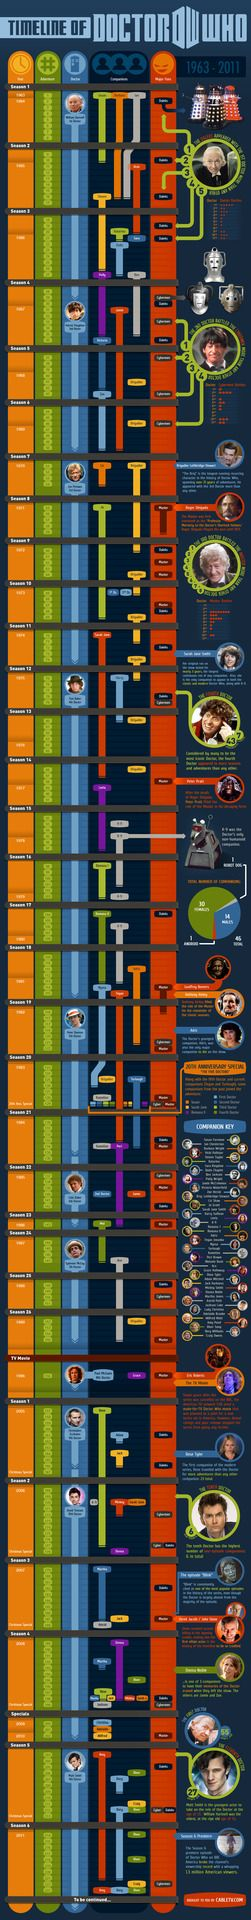 Check out this complete timeline of Doctor Who from 1963 to present, including episodes, seasons, companions, villains, and more. Scroll down to follow all the Doctor's adventures through time. A Fantastic resource for any Doctor Who fan.  .  .  .  #coolstuff#educational#geek#MoviesandShows#SocialStudies#trek